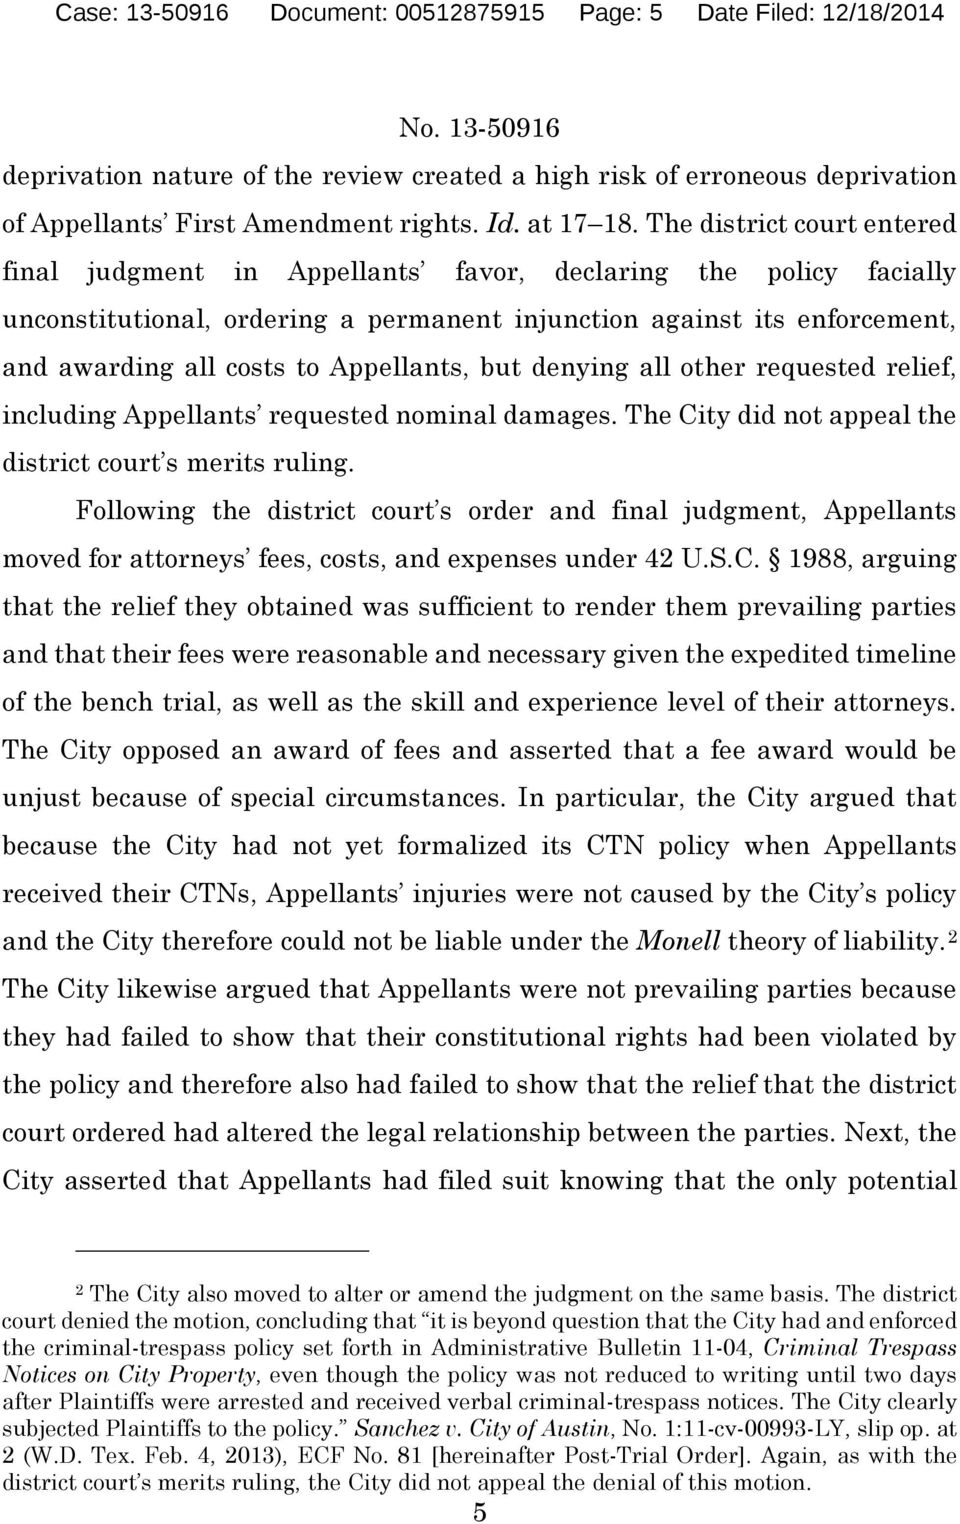 Appellants, but denying all other requested relief, including Appellants requested nominal damages. The City did not appeal the district court s merits ruling.